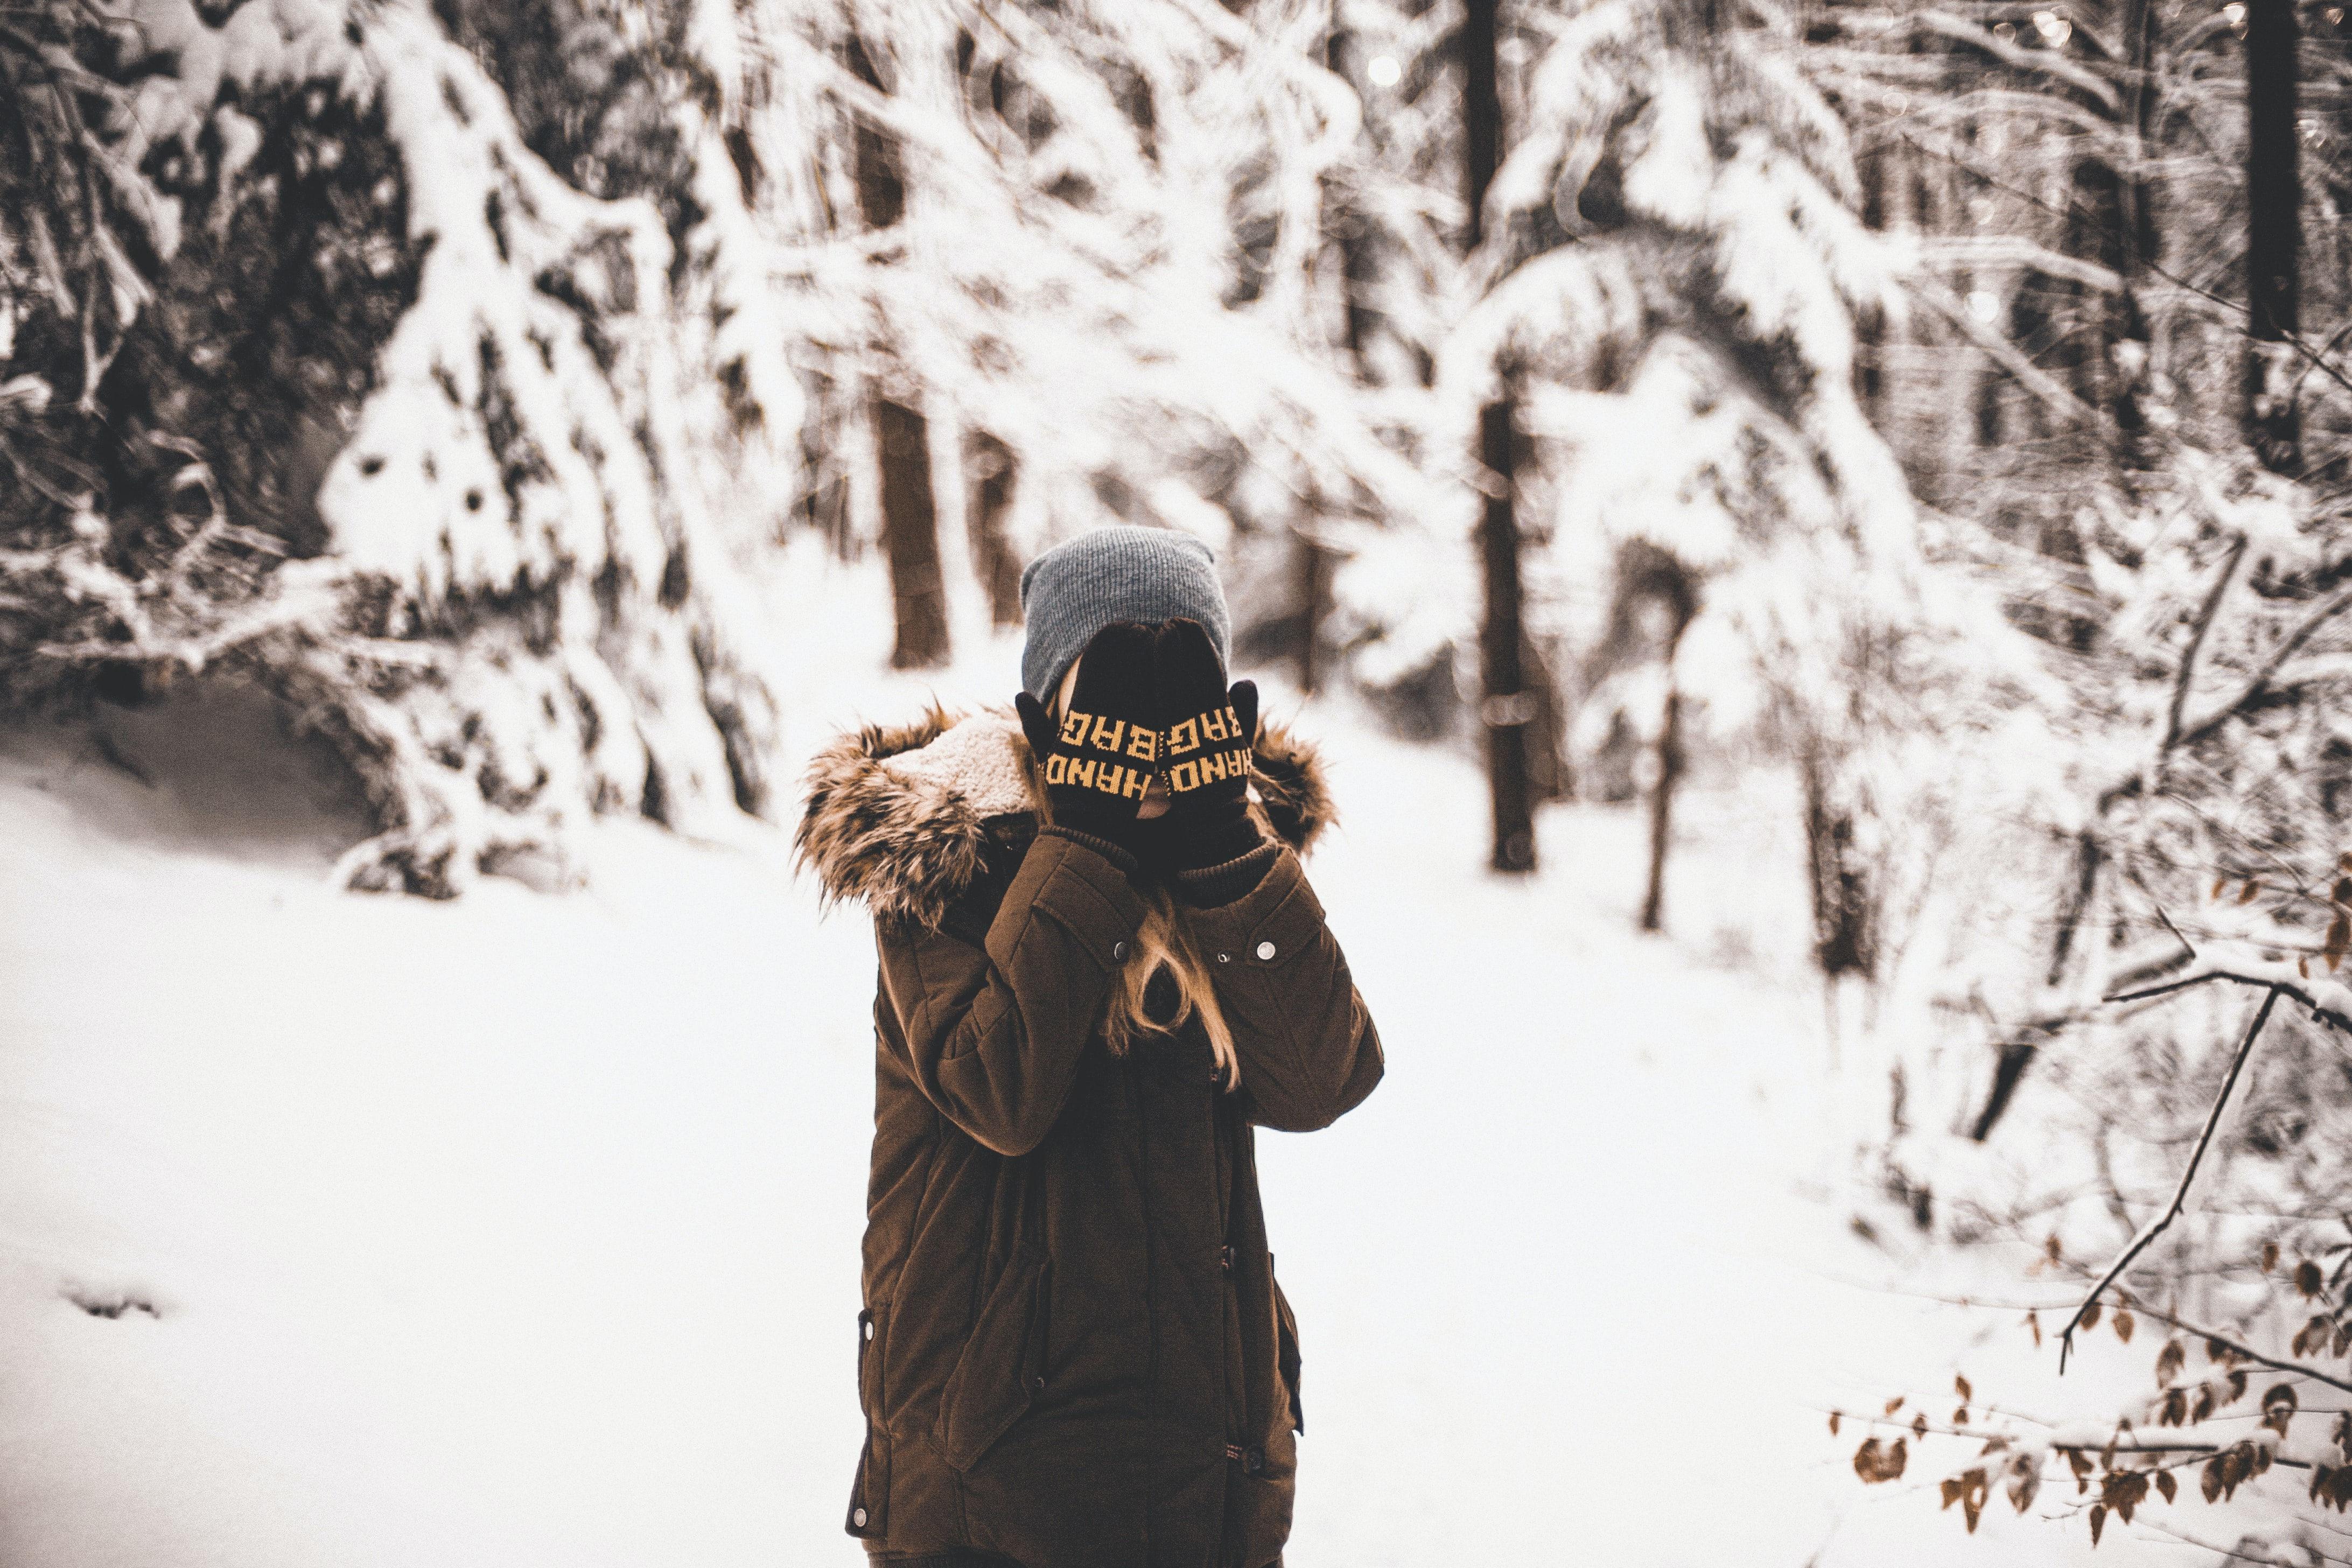 A woman in a forest covered in snow is wearing gloves, a jacket and a hood